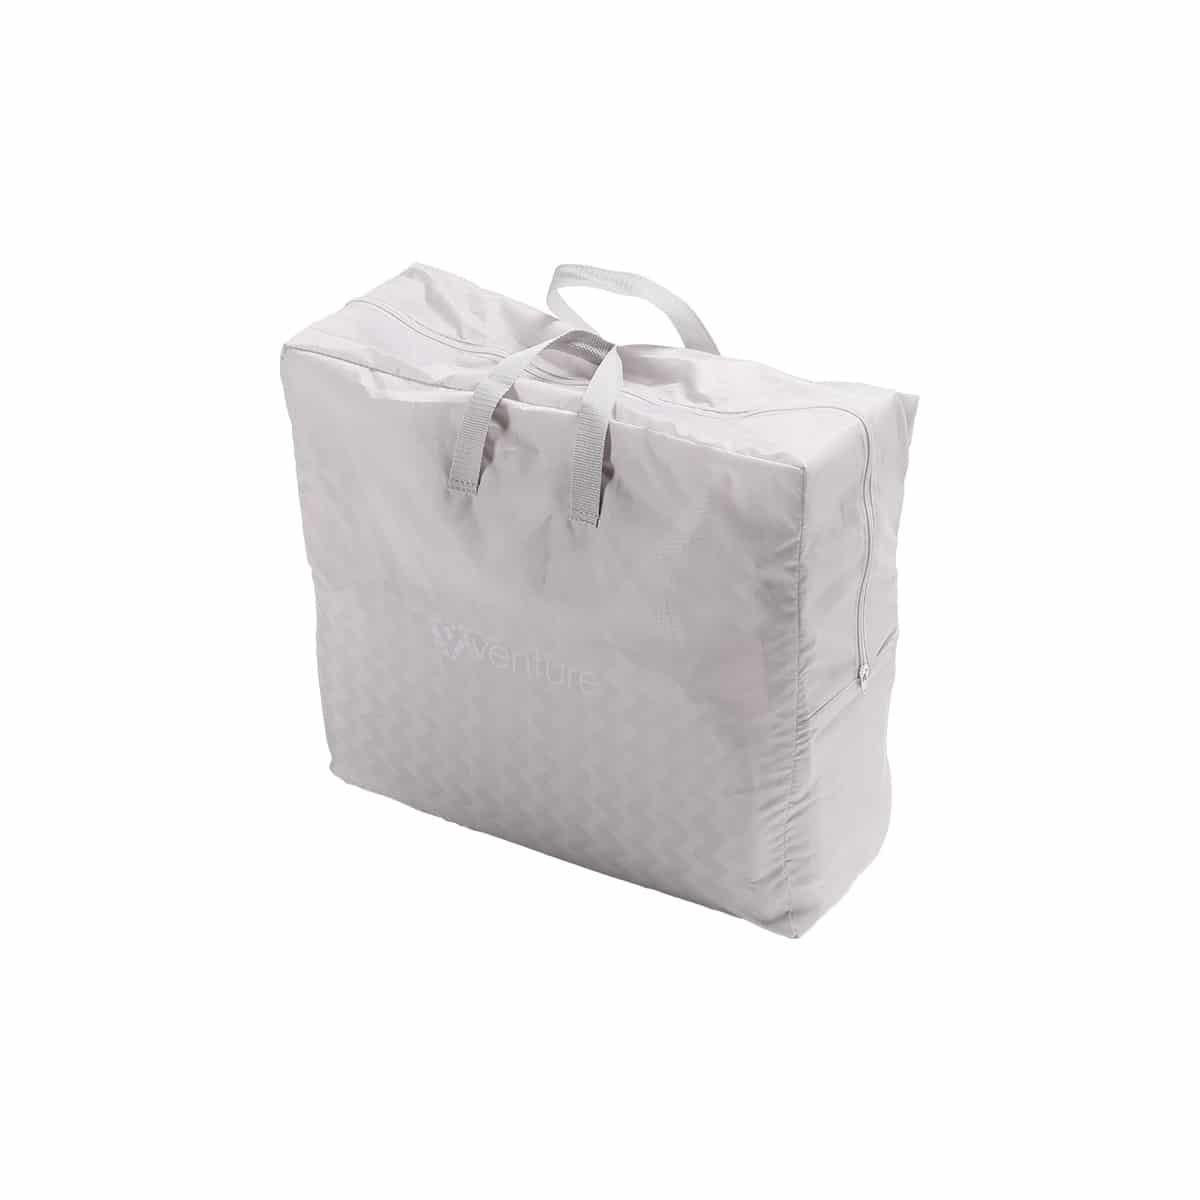 Folds down to fit into it's handy travel bag